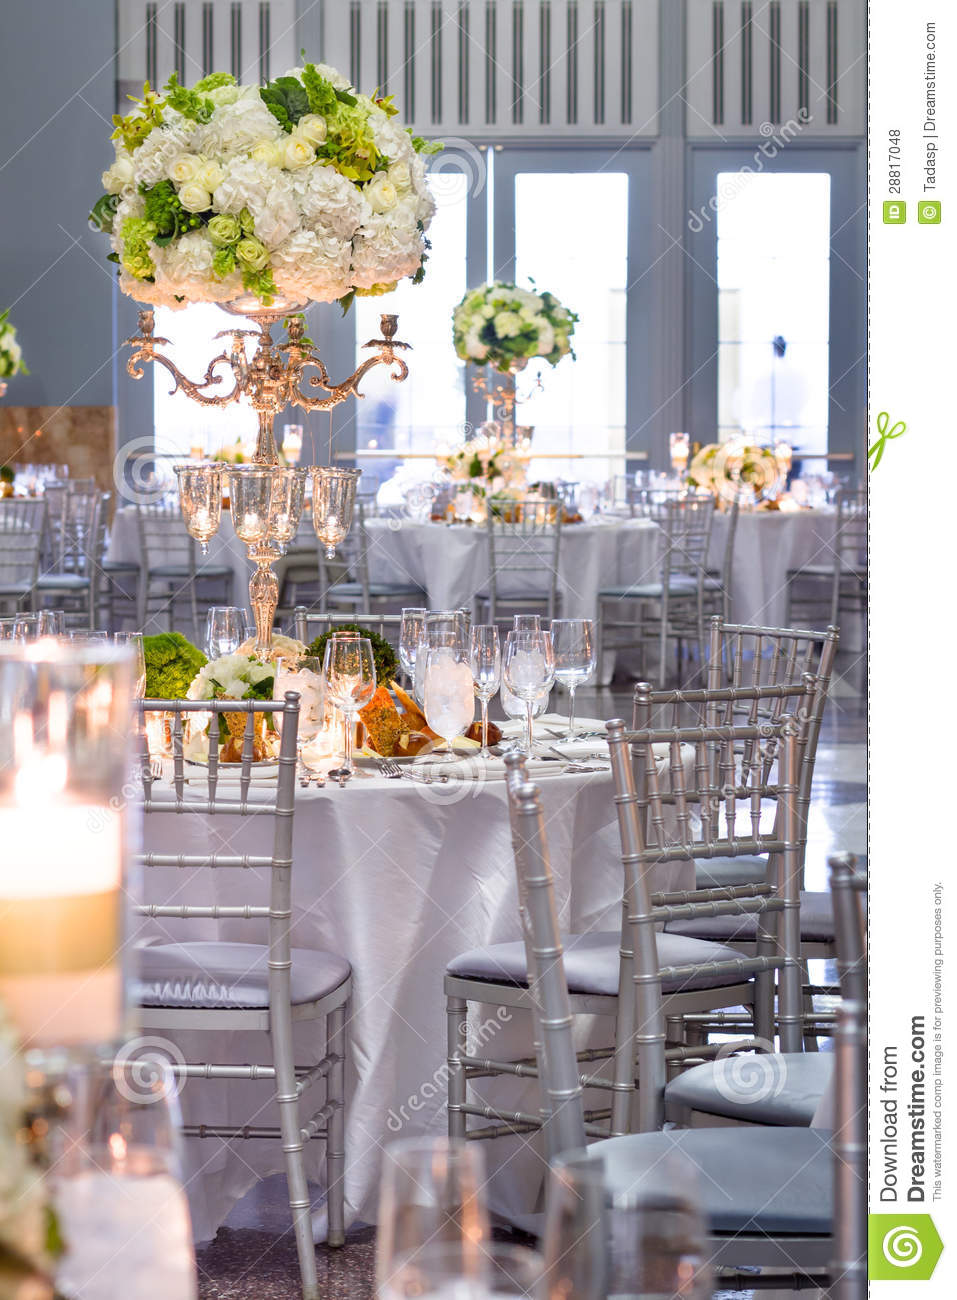 Download stunning free images about Table Decoration. Free for commercial use No attribution required.